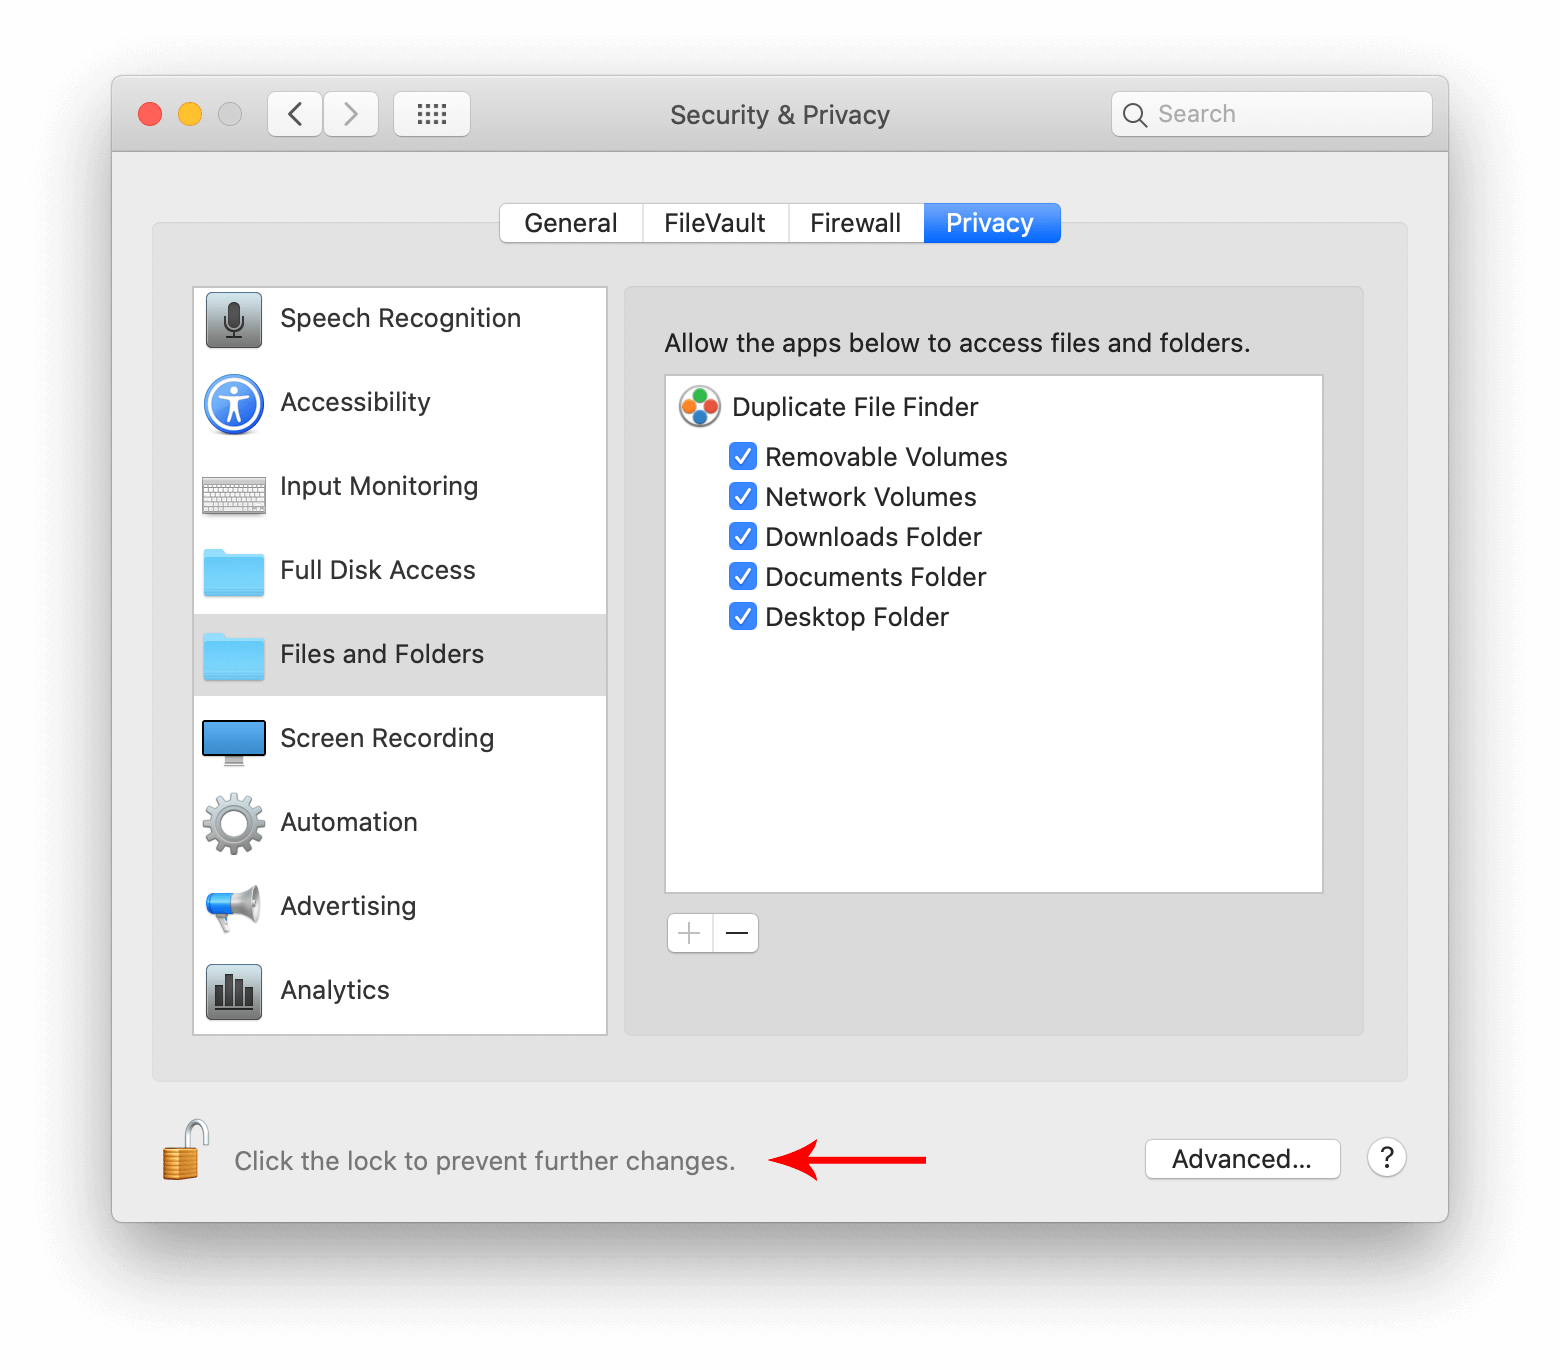 Files and folders option in Security and privacy preferences